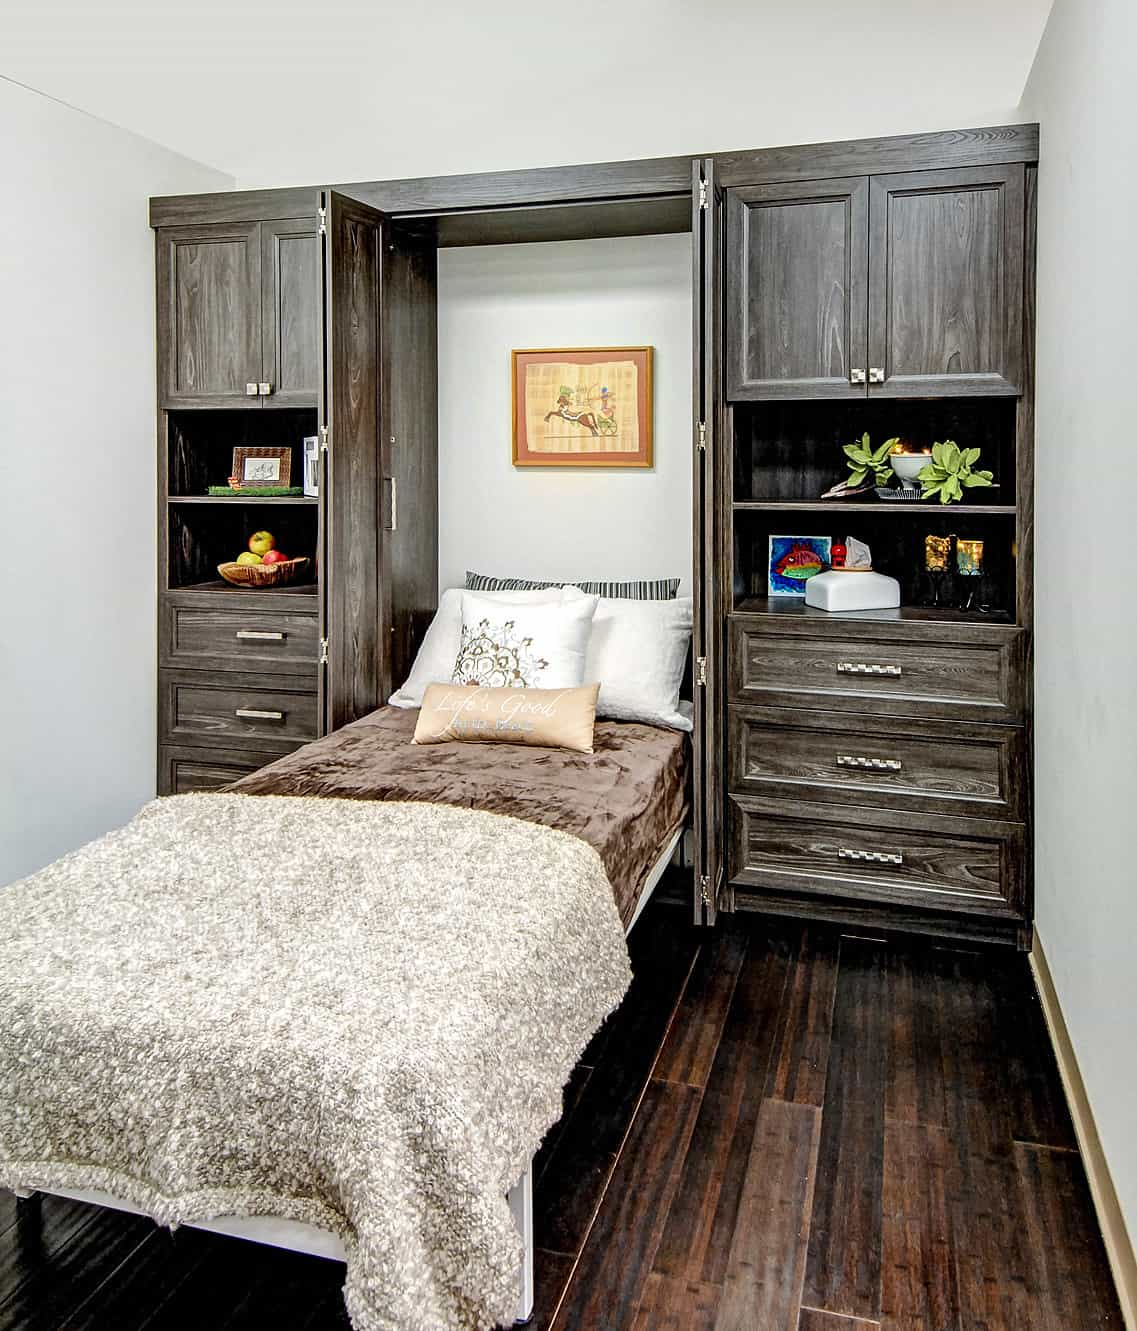 Wall bed under an overhead painting flanked by the wood double doors.